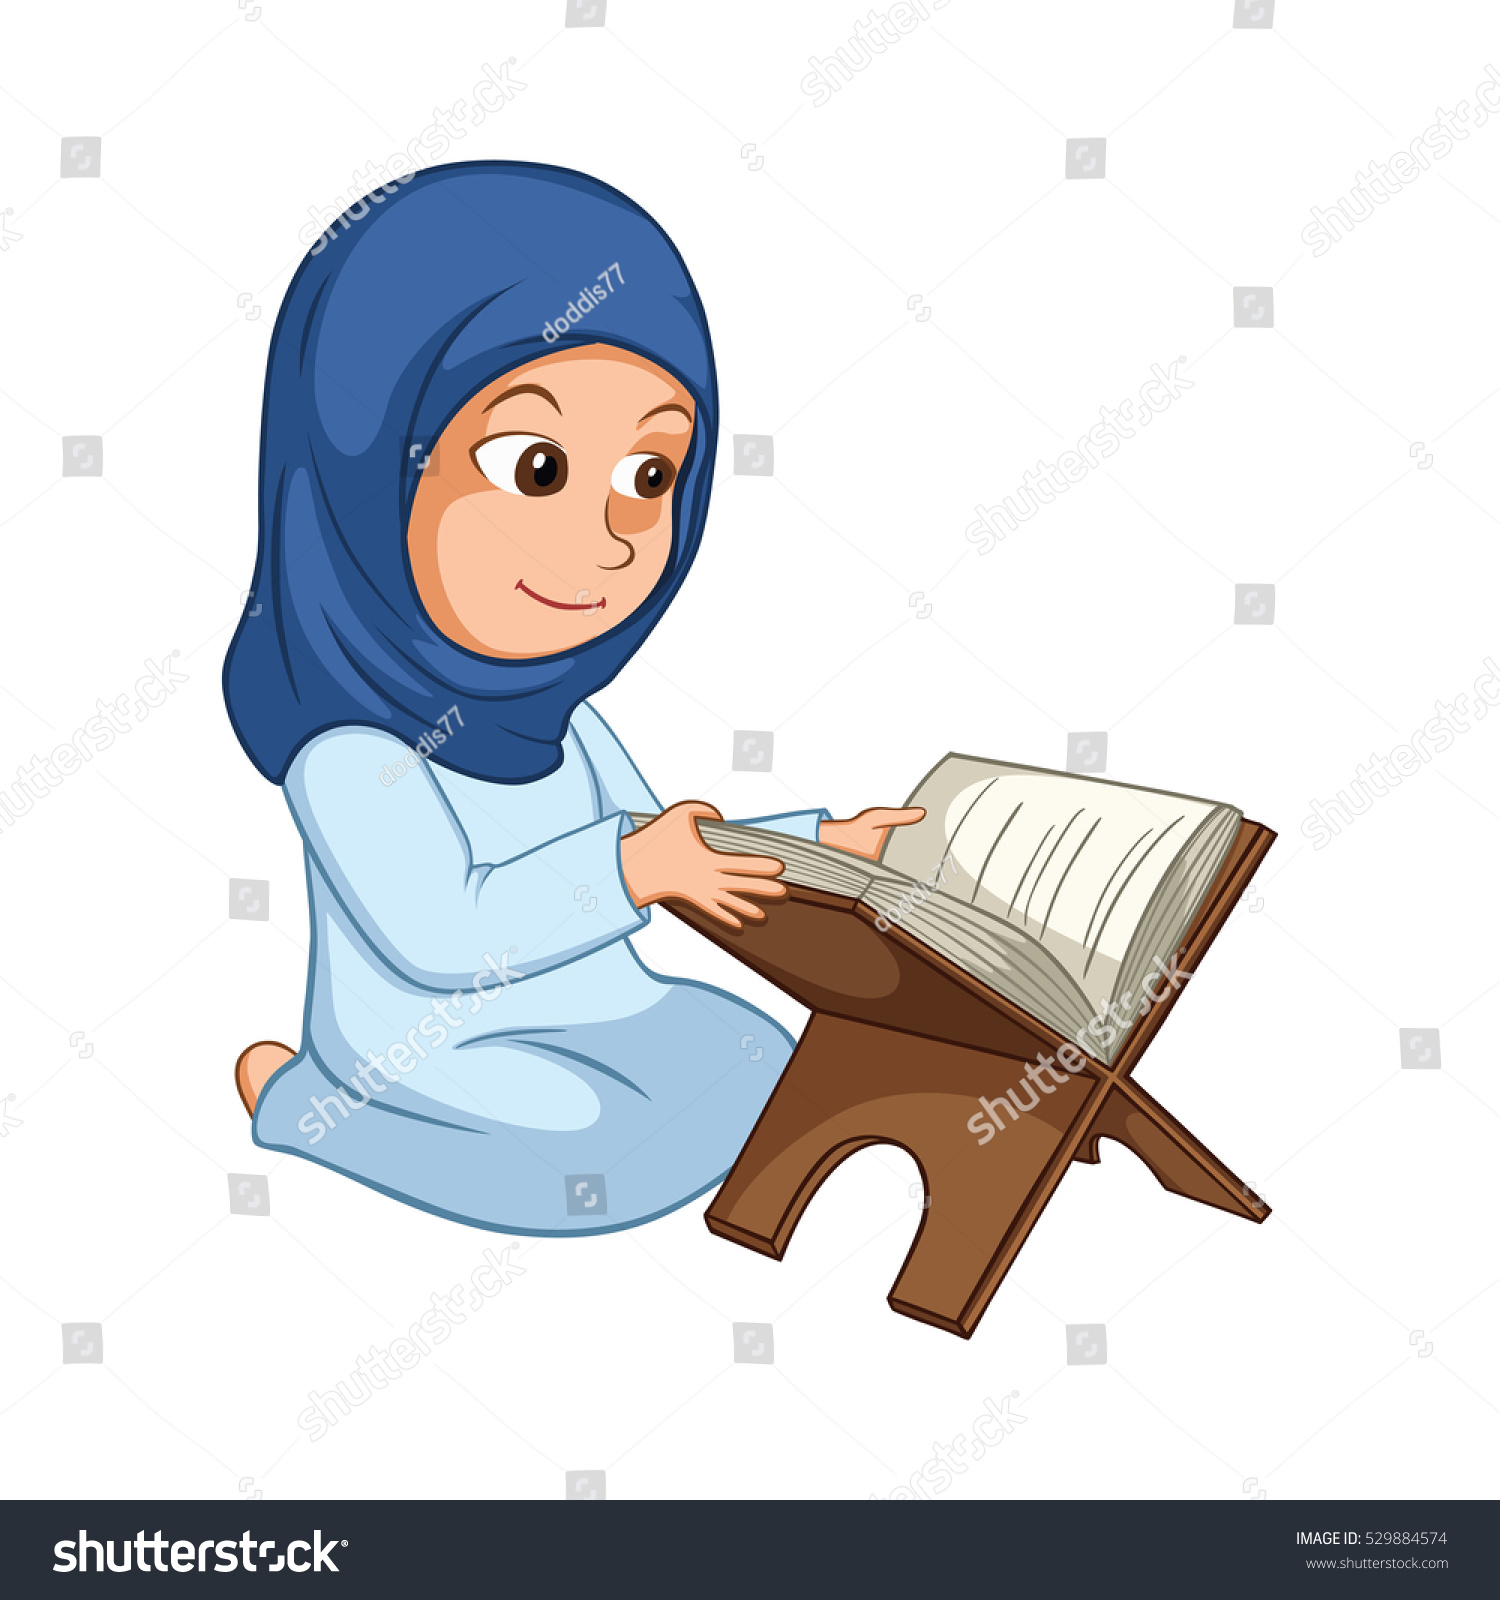 north reading muslim girl personals An italian girl always wants to know how much you're willing to  7 differences between dating an american girl and an italian girl photo: aenimation.